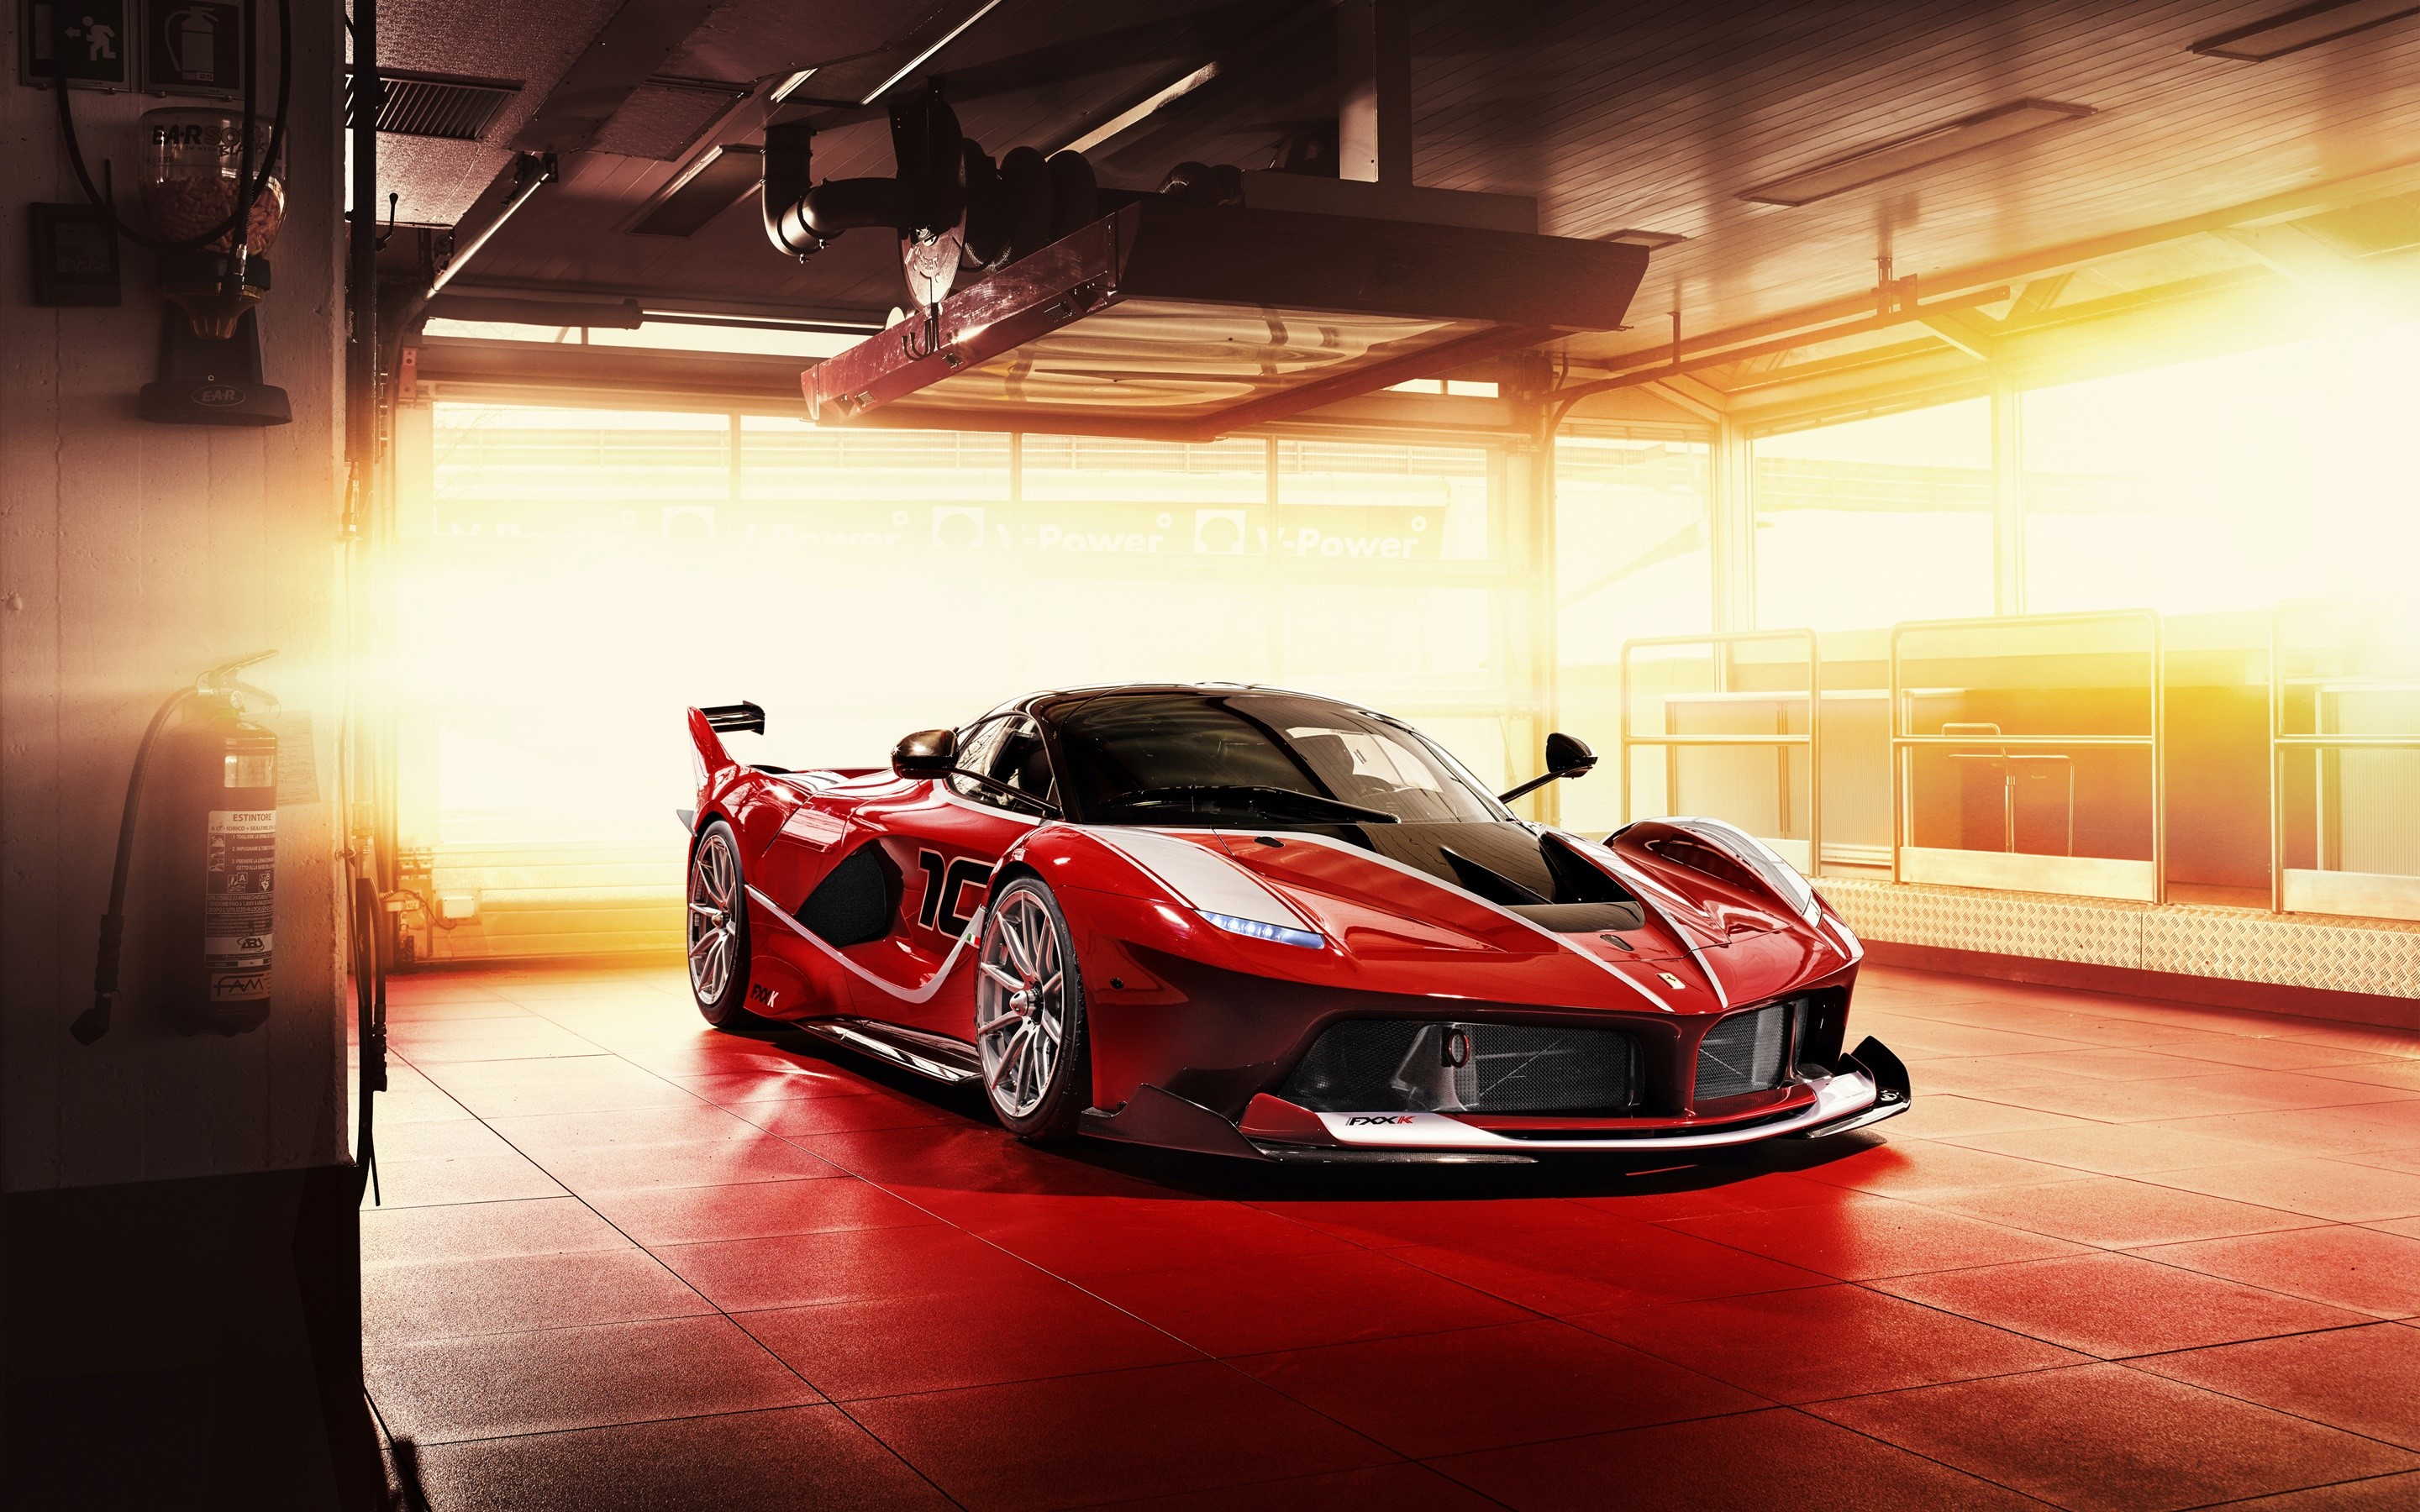 Wallpaper Ferrari FXX K red